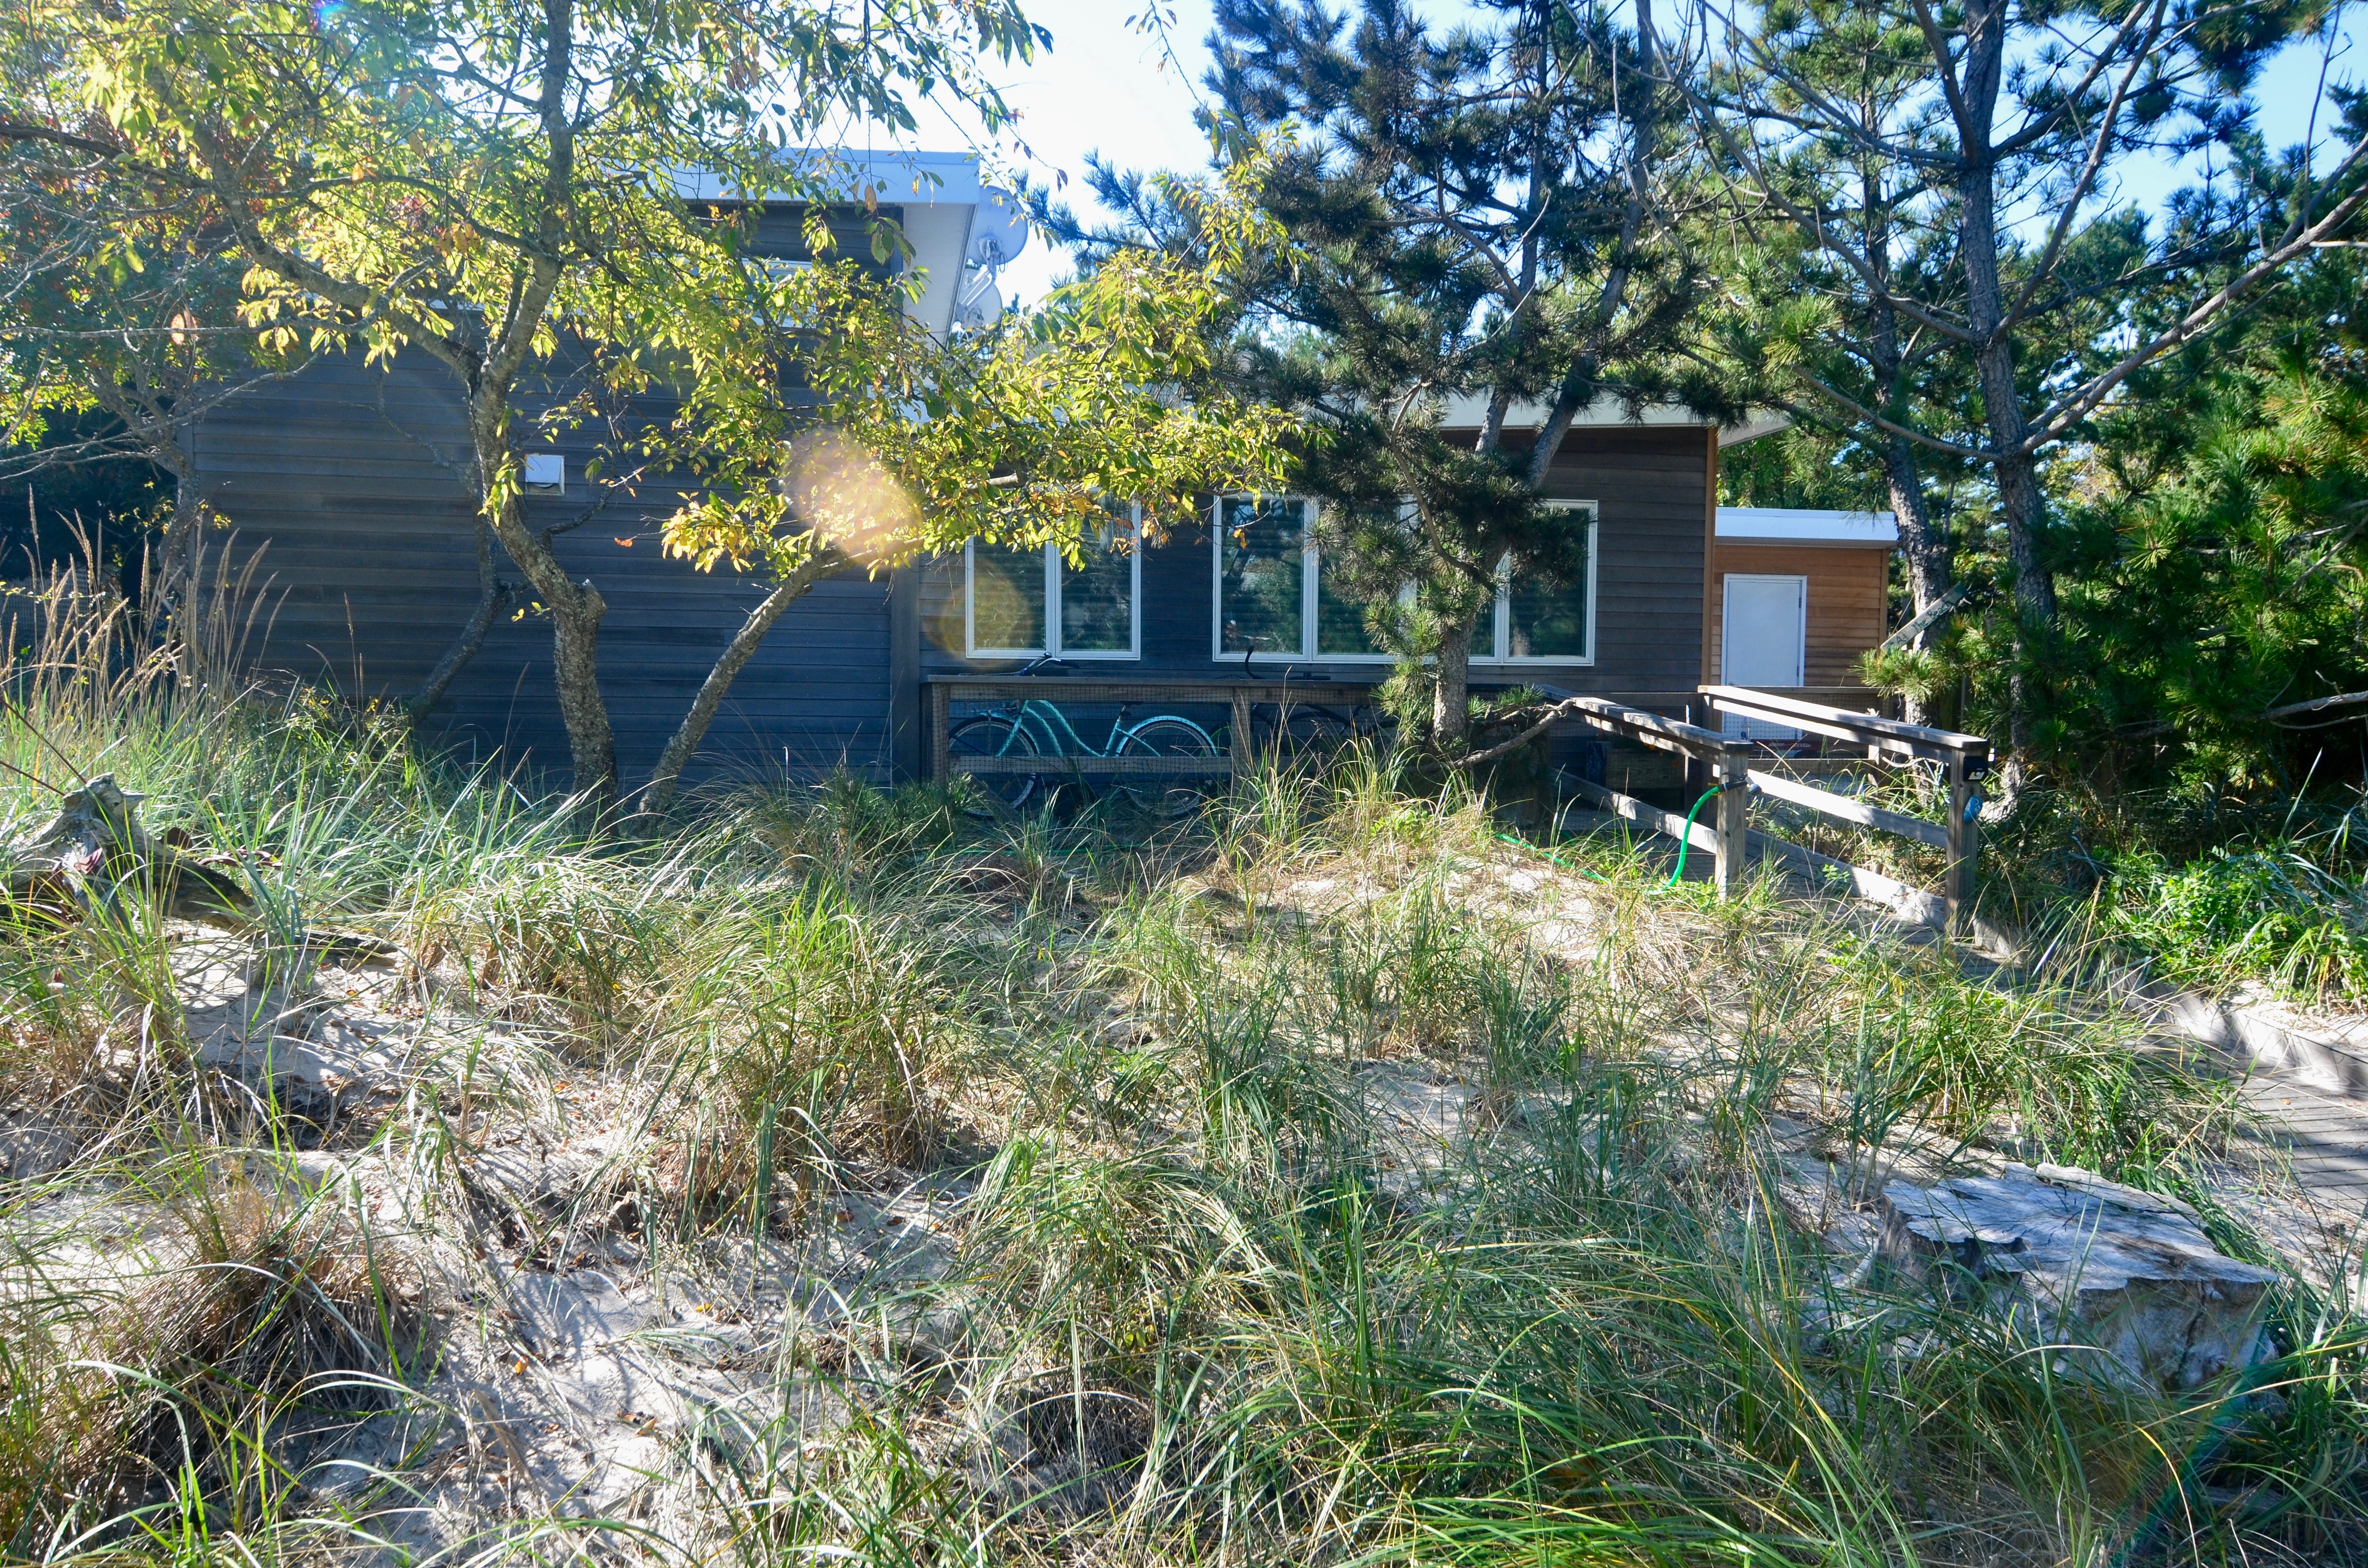 Rarely available home tucked away in a prime location on the east end of Seaview.  Not only is this home only 4 houses back from the beach, but it's situated on a double lot (120' X 100').  The home features 3 bedrooms, 2 bathrooms, and an office.  The beautifully renovated kitchen has high end custom cabinetry, Viking appliances, granite countertops, and opens up to the spacious living and dining areas, which flow nicely out to the large, sunny, west-facing deck.  Enjoy the home as is or expand to create a massive getaway for your family.  Zoning permits a 4,200 SF footprint and a maximum buildable square footage of 8,400 SF.  Concept plans include a second story with deck and a large pool.  This is an amazing opportunity with lots of potential!  This home also has low taxes & carrying charges!